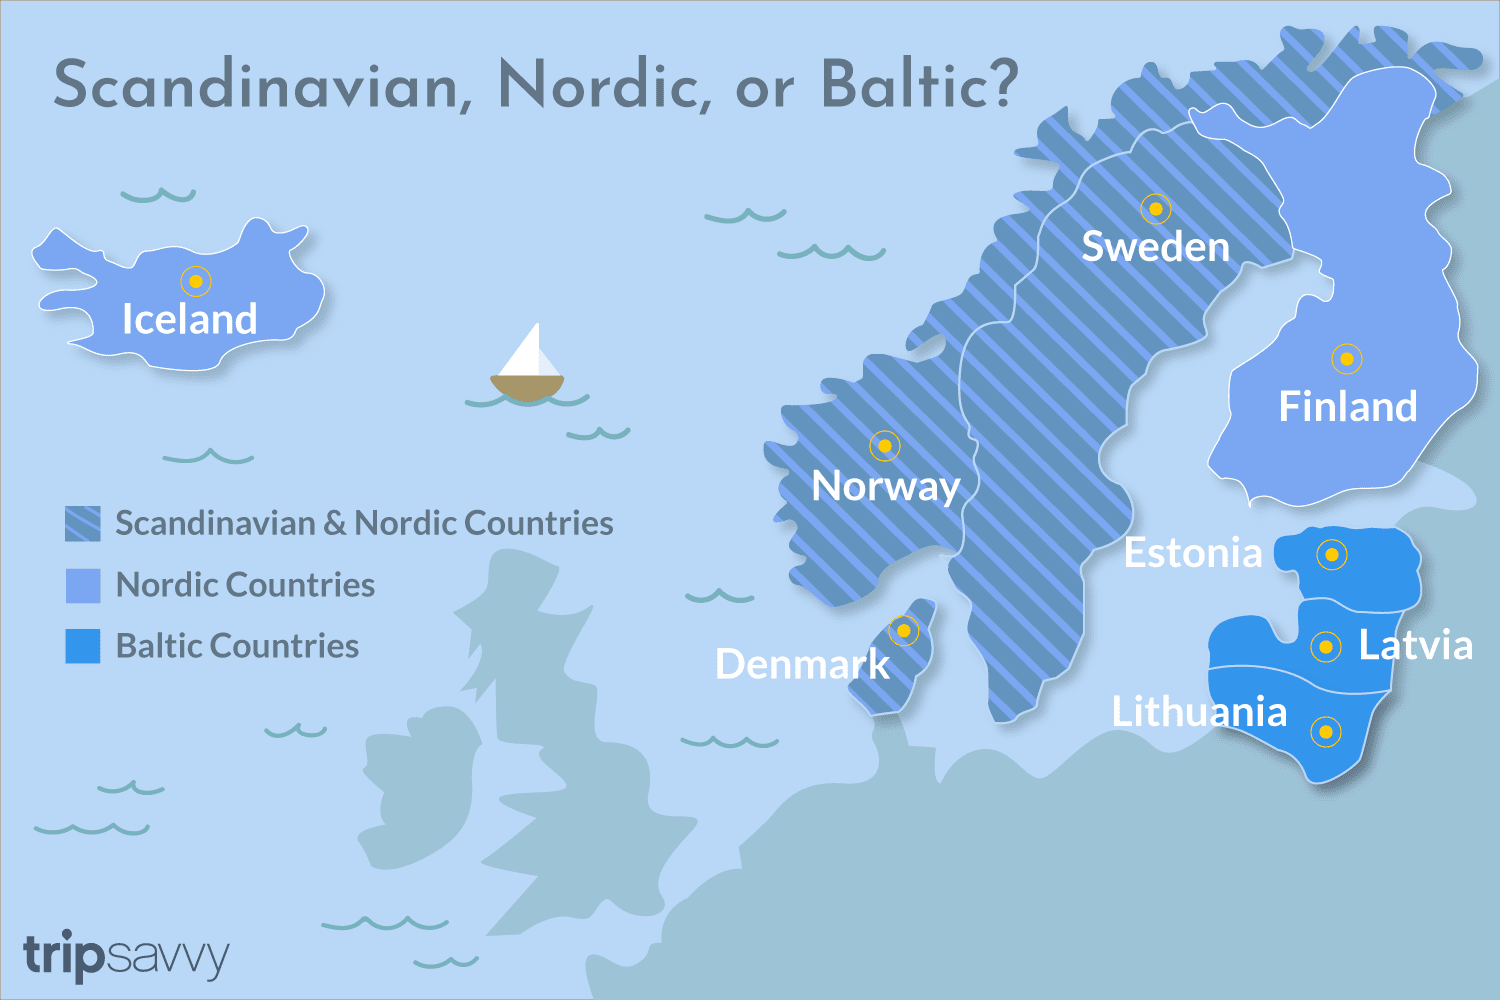 The Difference Between Scandinavian and Nordic on map europe, map with hawaii, map roanoke va, northern europe, nordic countries, map puget sound area, map du monde, eastern europe, iberian peninsula, map netherlands, germanic peoples, map wichita ks, map cambodia travel, baltic sea, map recipe, map cincinnati ohio, map italy, faroe islands, sami people, baltic countries, map ireland, map uk, map south africa, map denmark, map desktop wallpaper, scandinavian peninsula, map new zealand, map reading worksheets, map example, map asia pacific region,